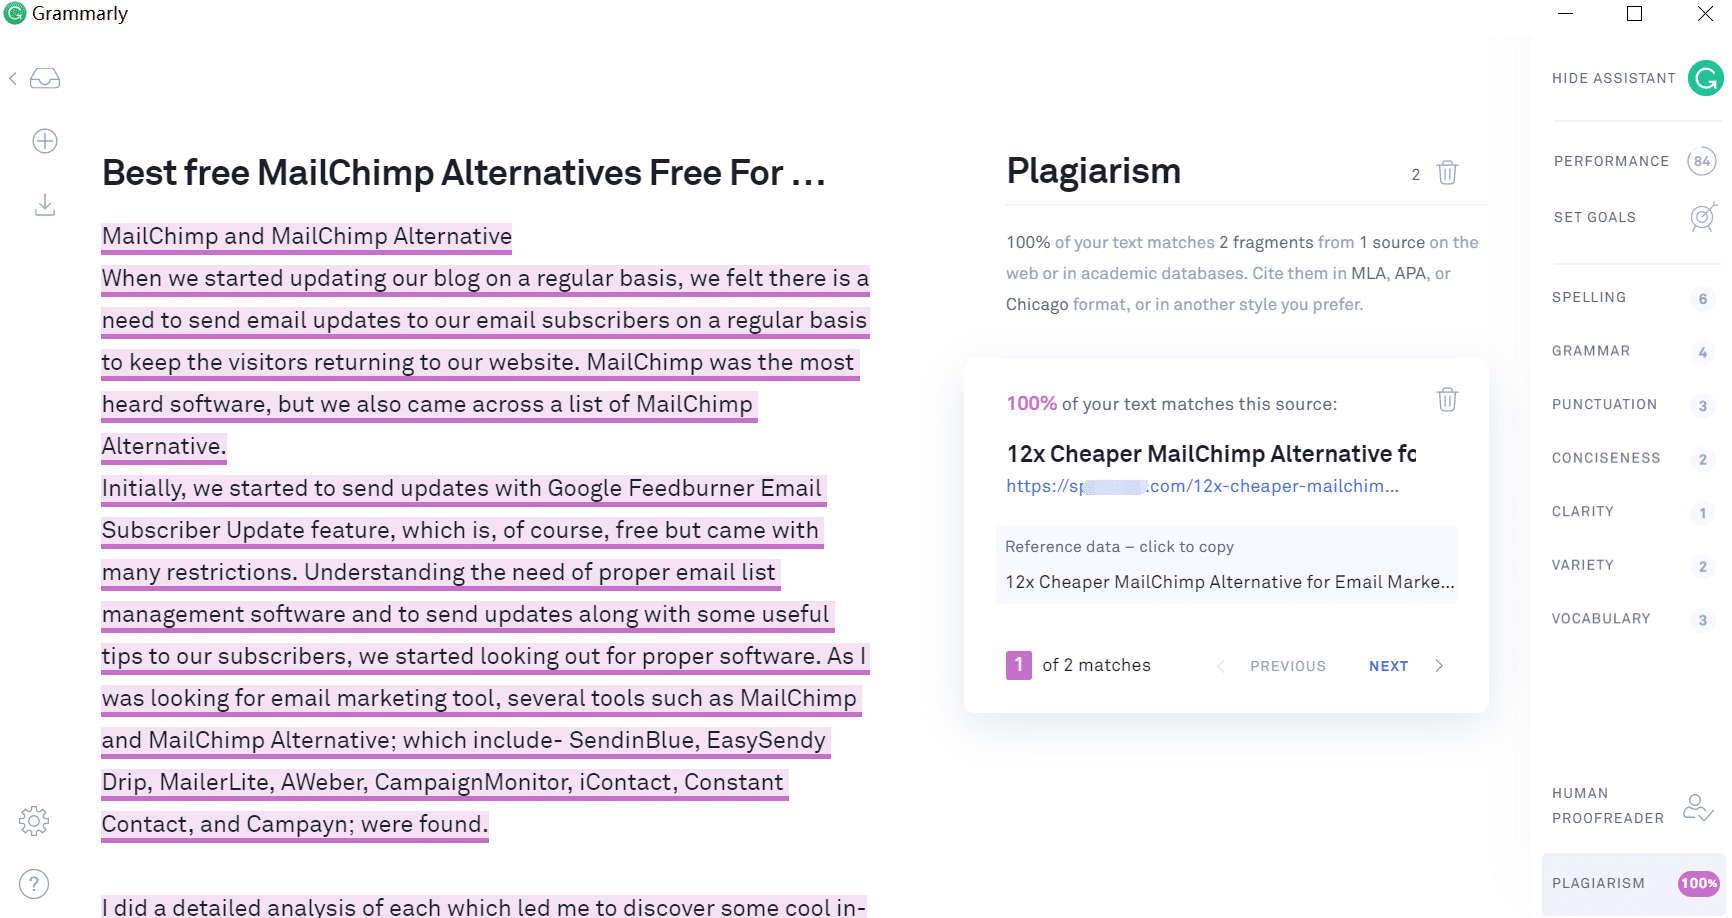 Grammarly for Plagiarism Checking Tool